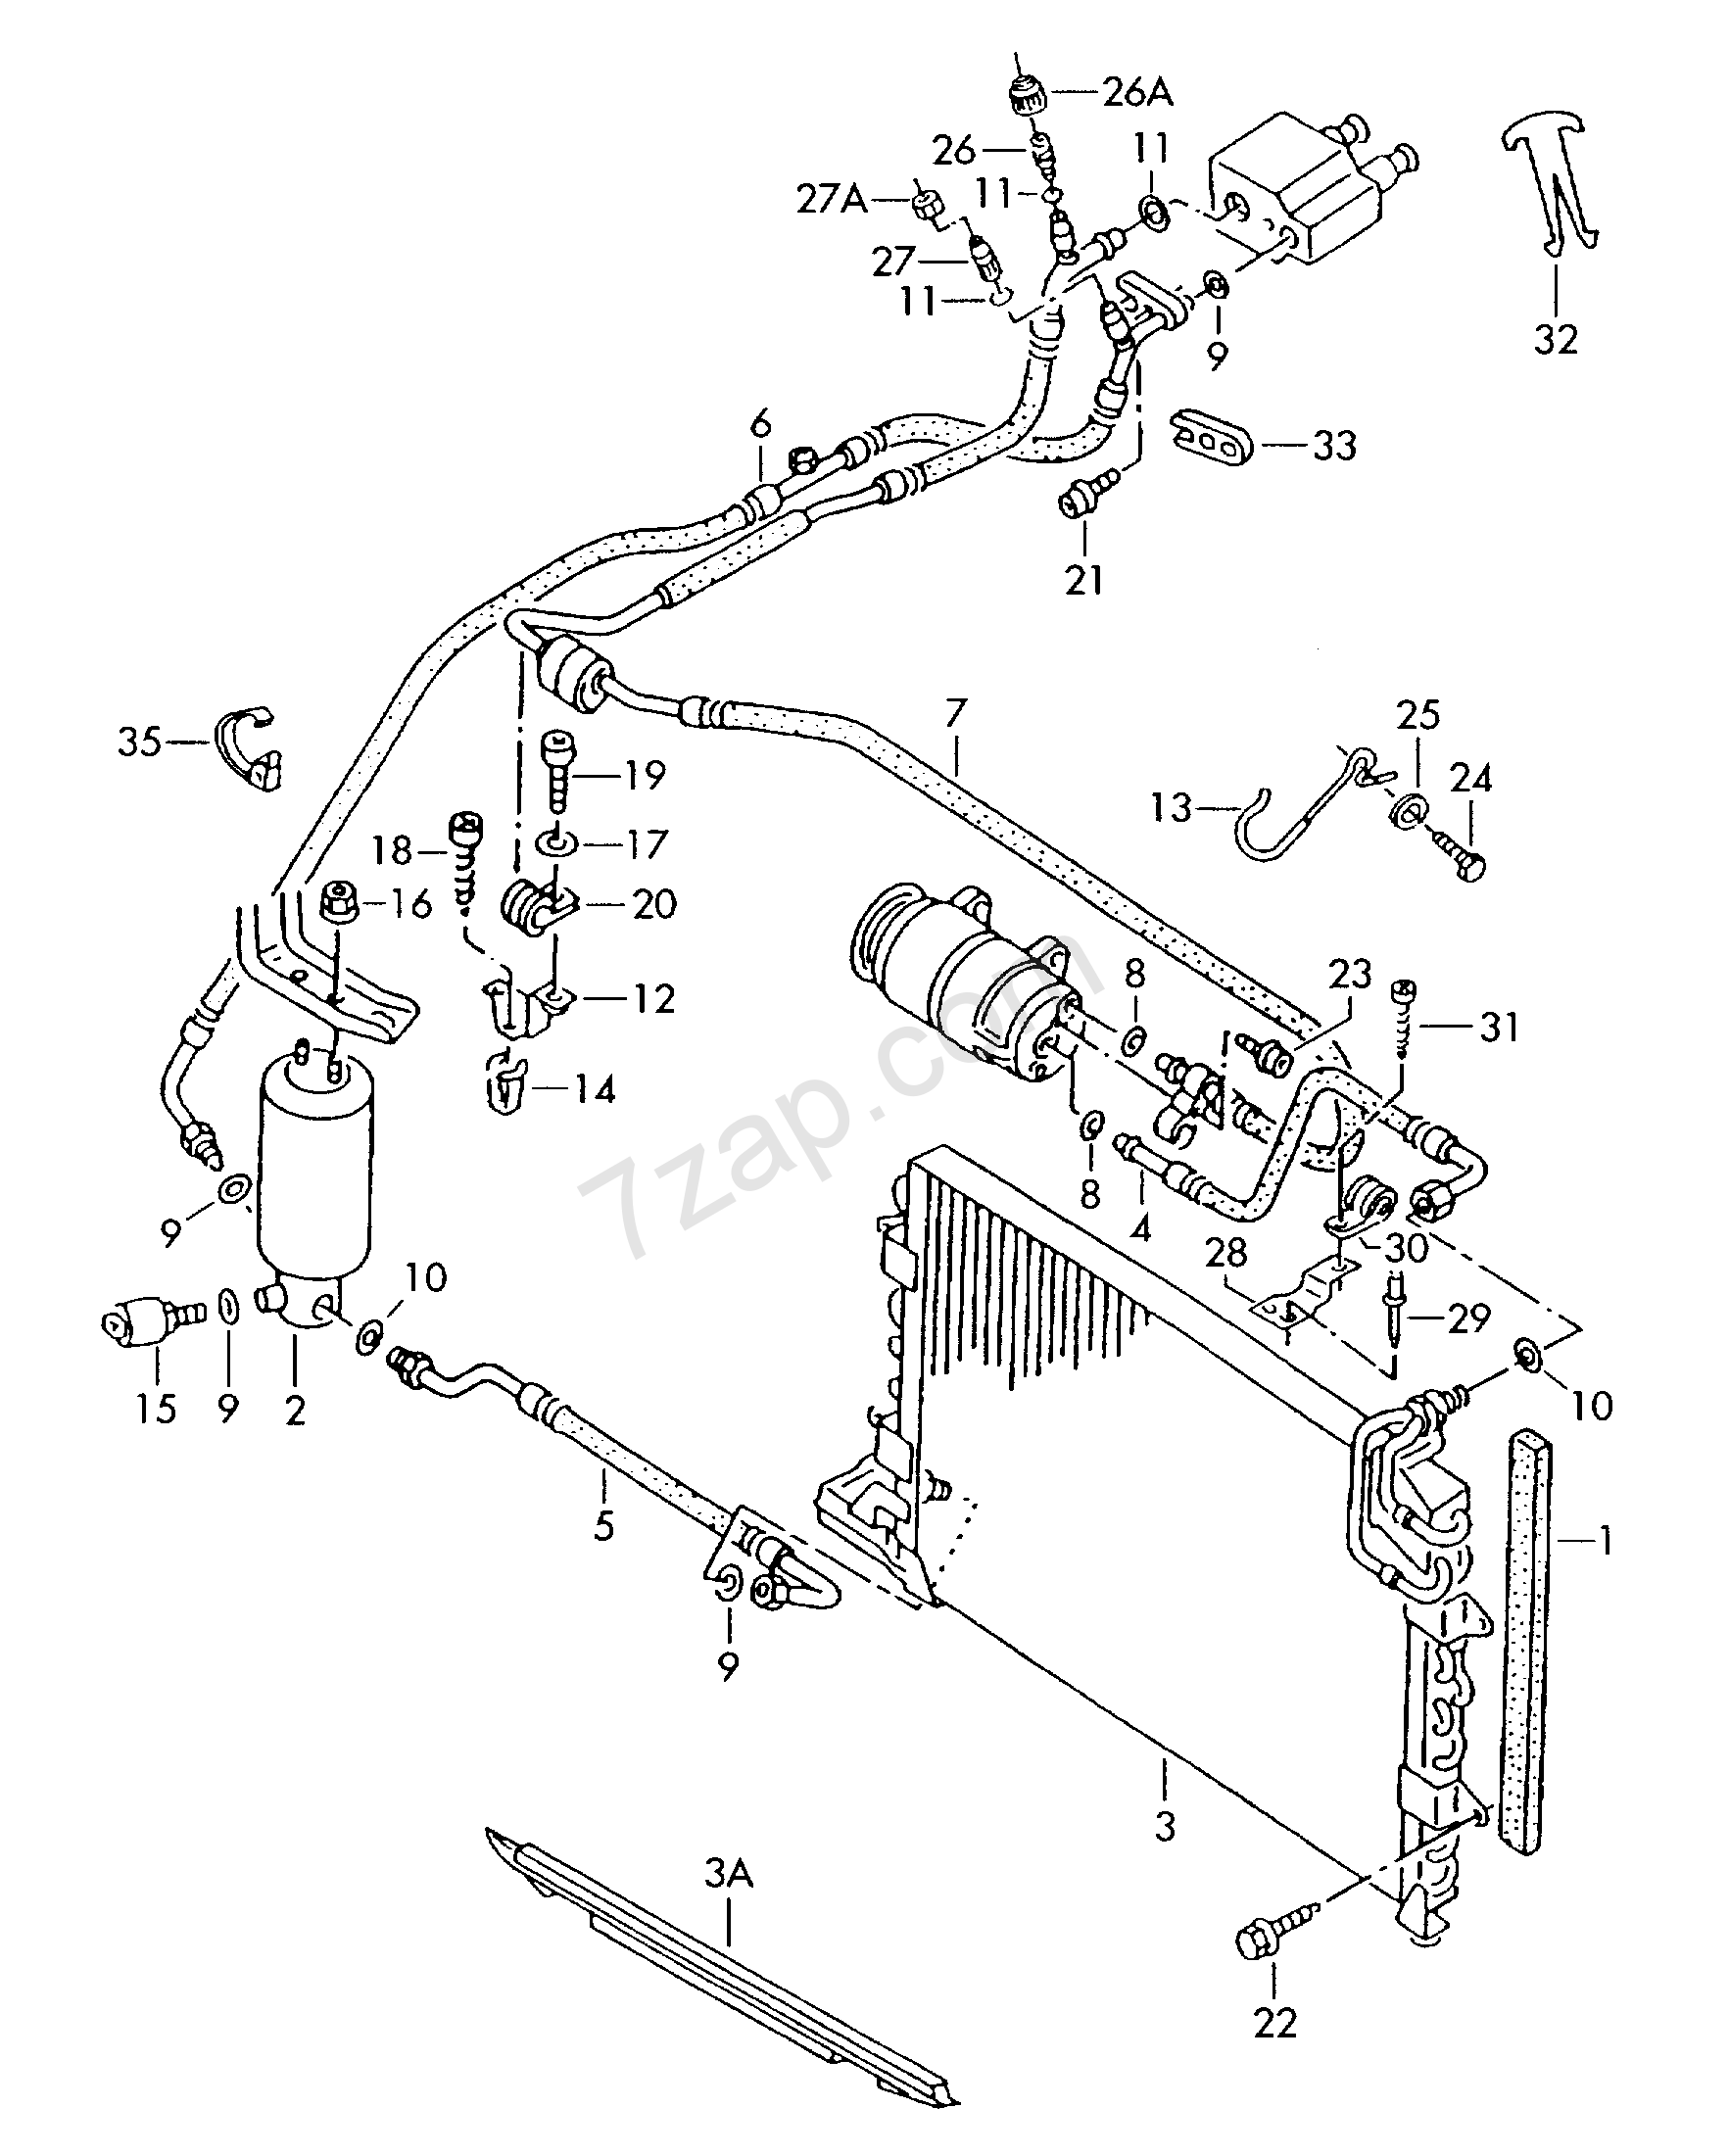 Volkswagen Parts Usa: A/c Condenser; Fluid Container With Connecting Pa... Golf